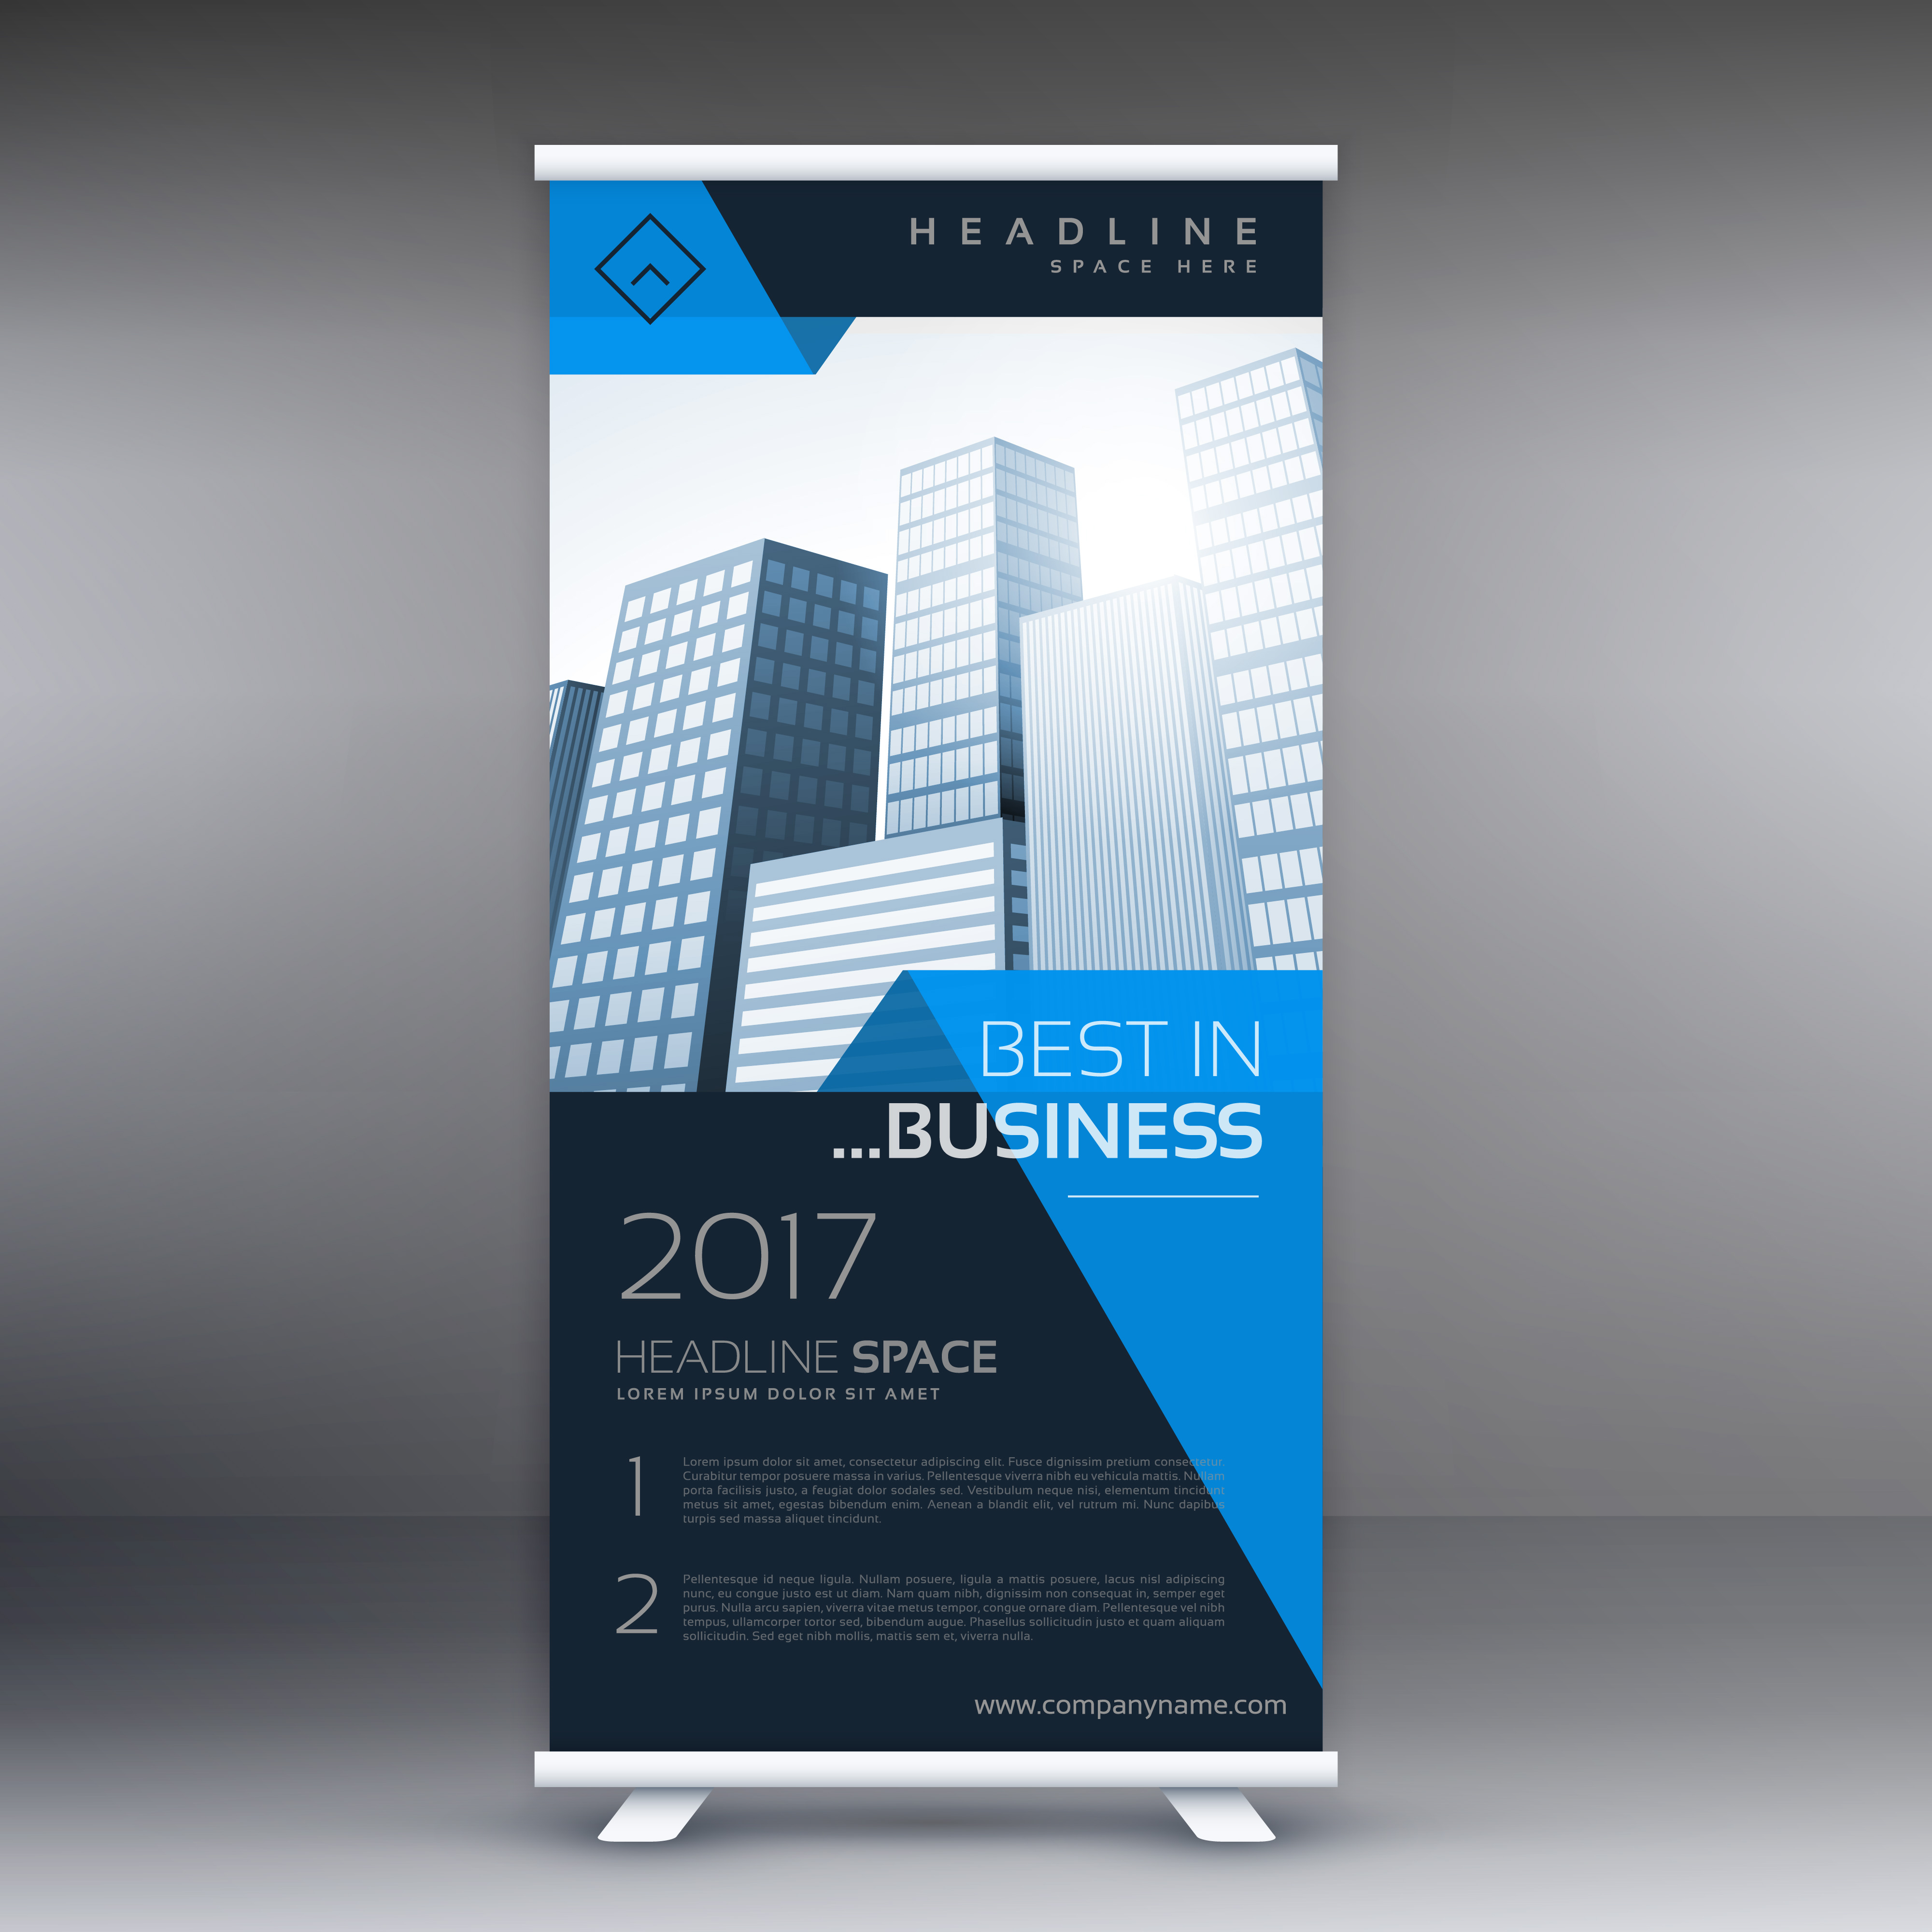 Company Roll Up Banner Display Download Free Vector Art